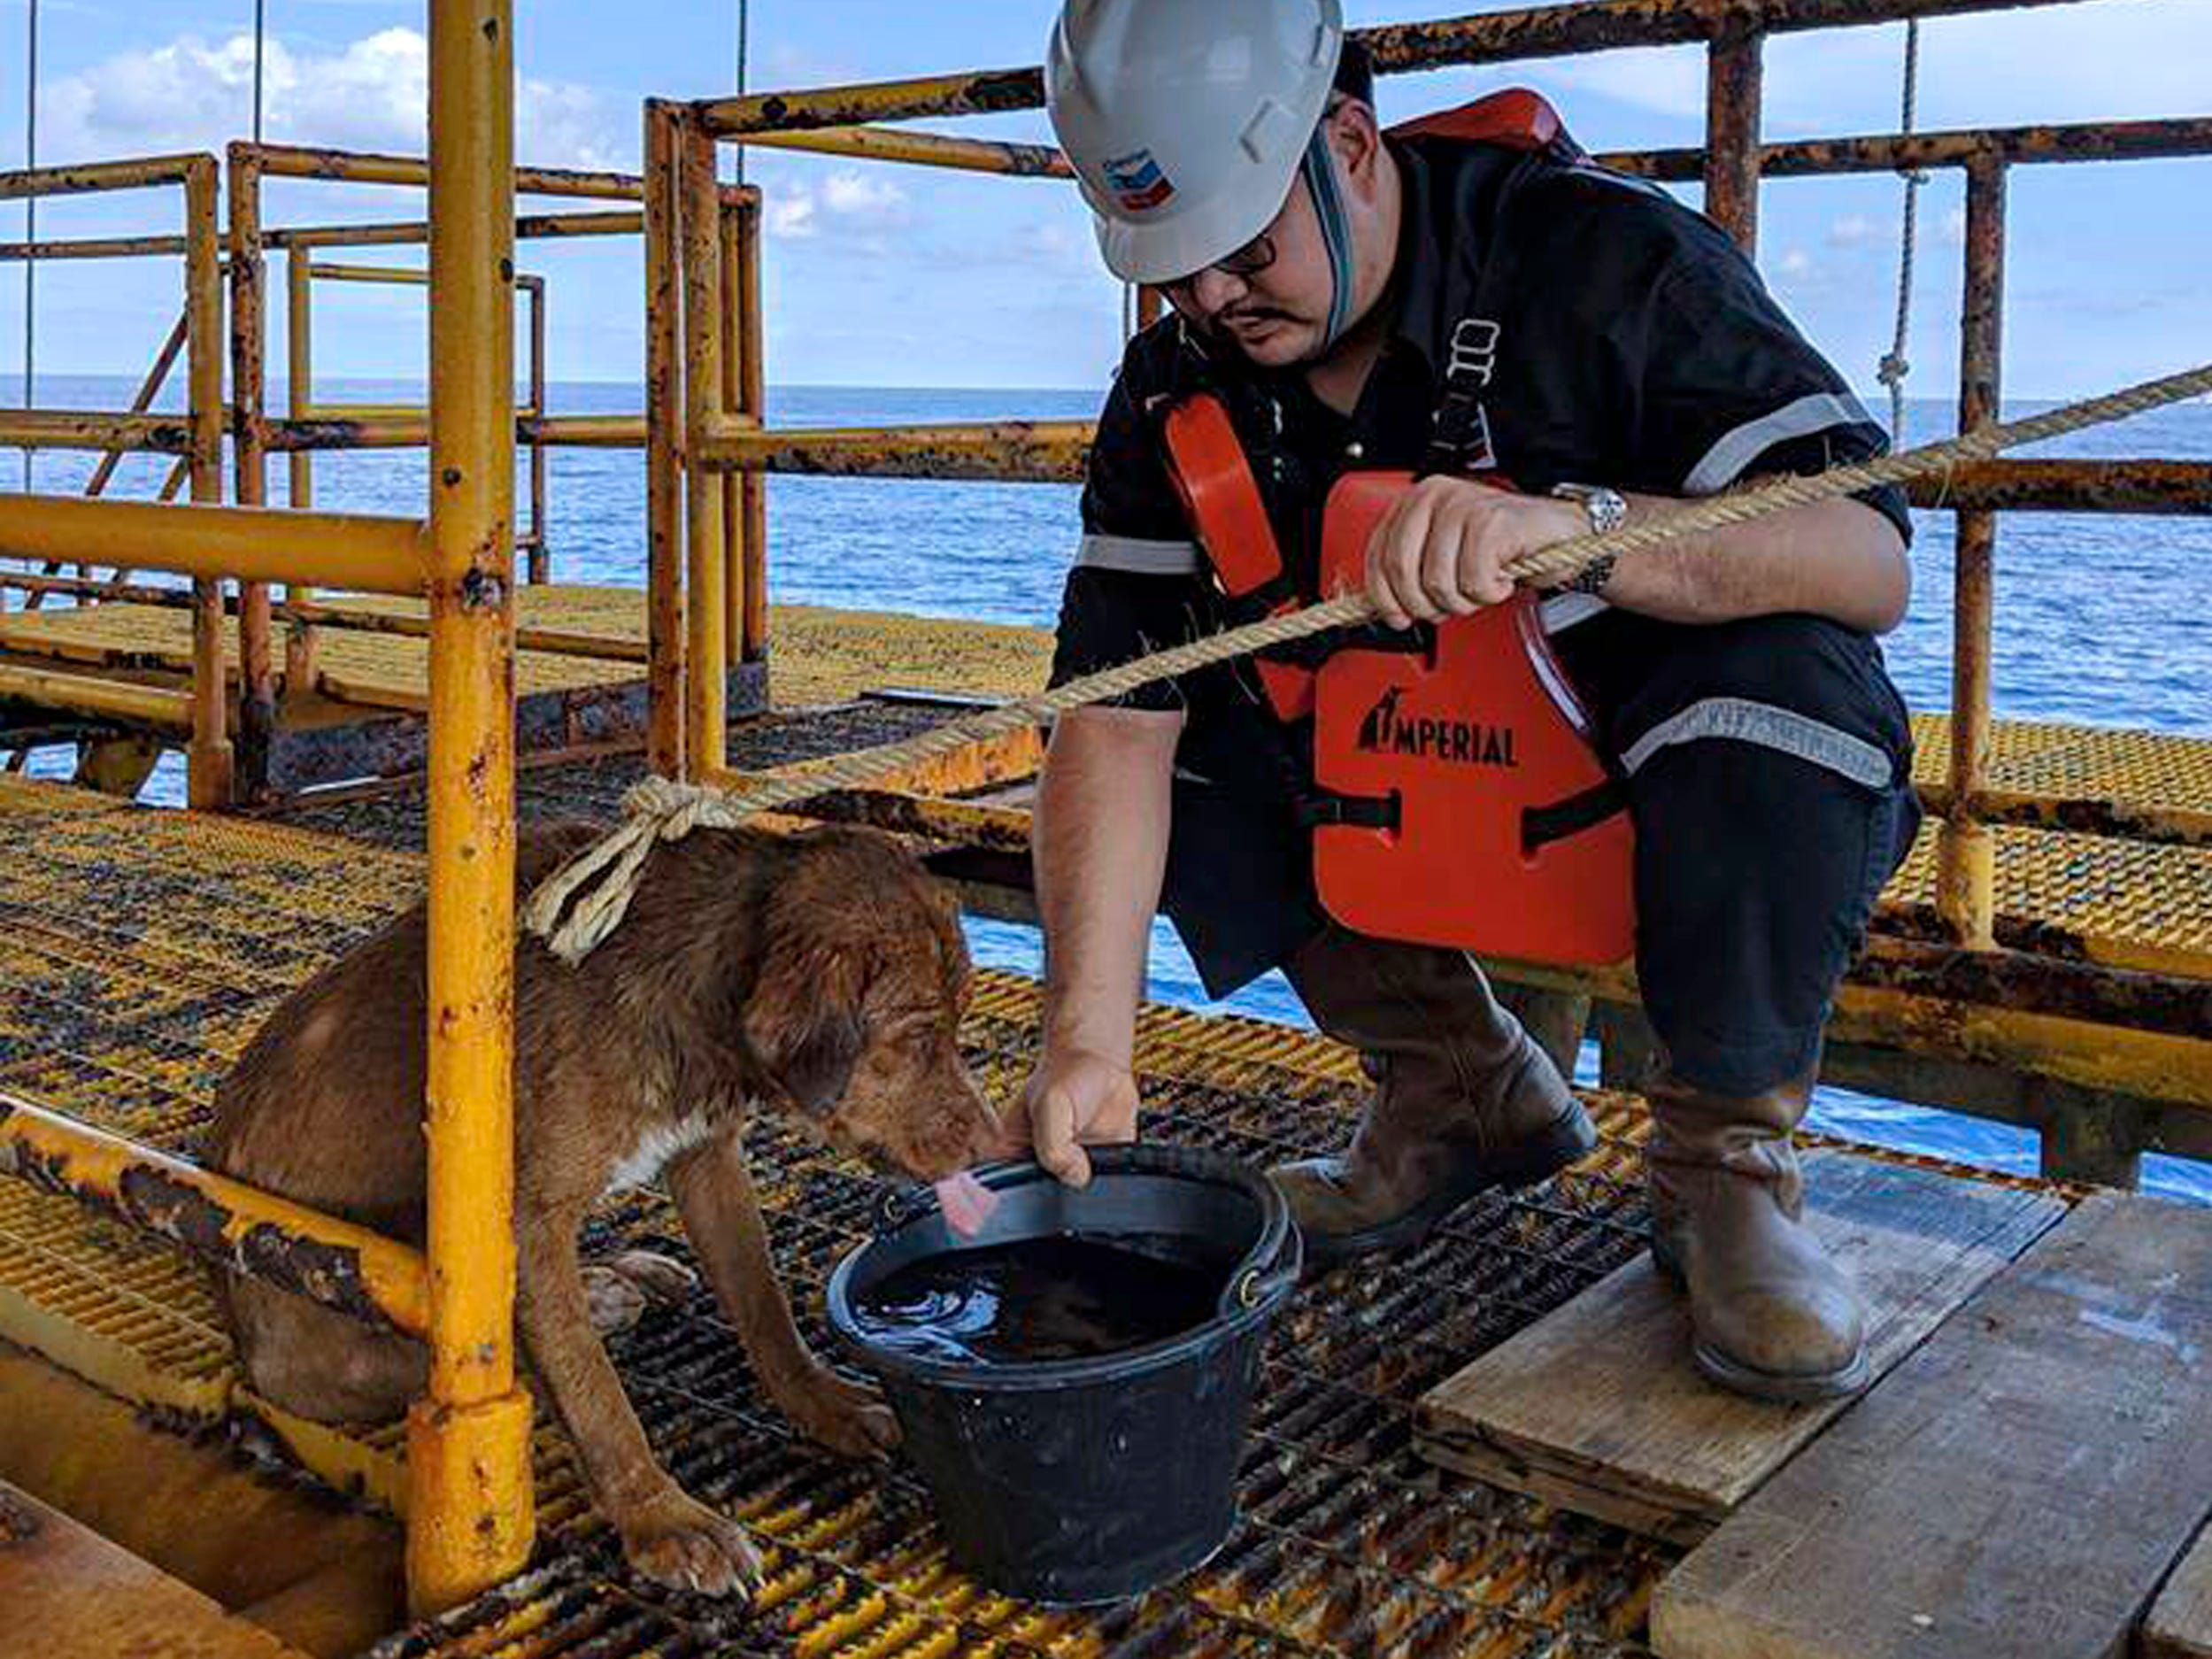 A dog is taken care an an oil rig after being rescued in the Gulf of Thailand. The dog, found swimming more than 135 miles from shore by an oil rig crew in the Gulf of Thailand, was returned safely to land. Vitisak Payalaw, stationed on the rig belonging to Chevron Thailand Exploration and Production, said on his Facebook page the dog was glimpsed Friday swimming toward the platform, where it got a grip on a pole at sea level.